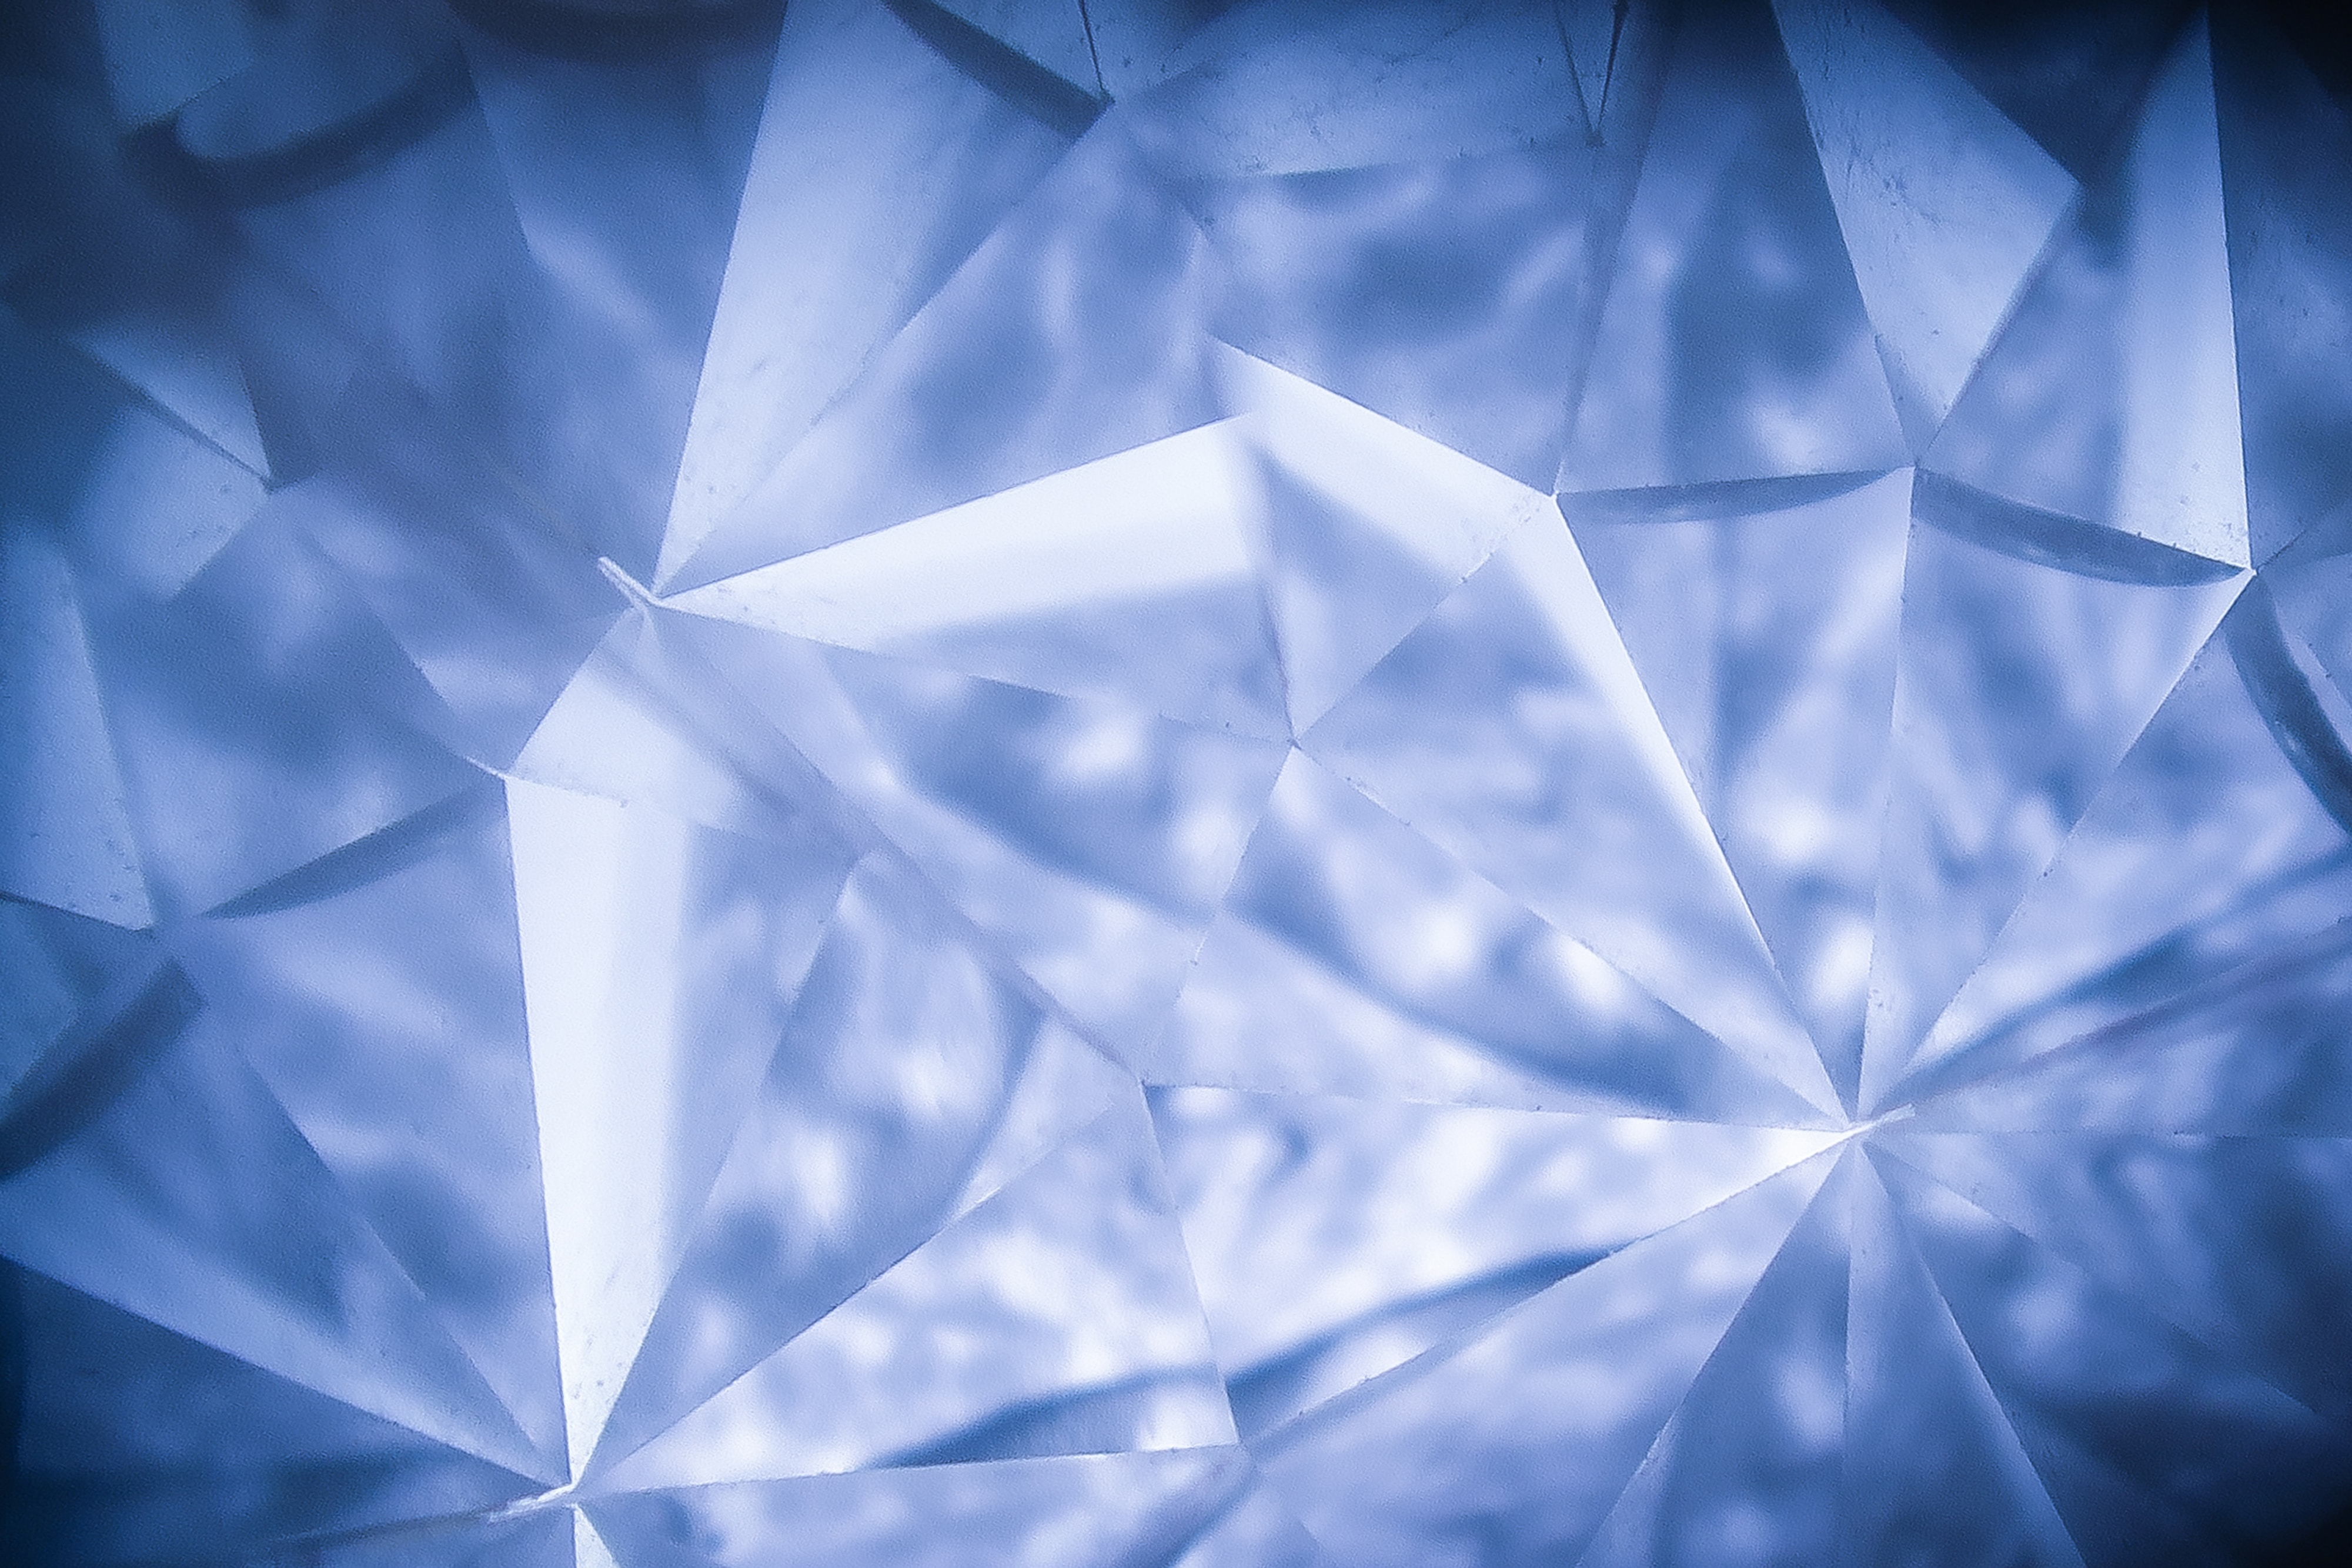 Is Your Content a Diamond?